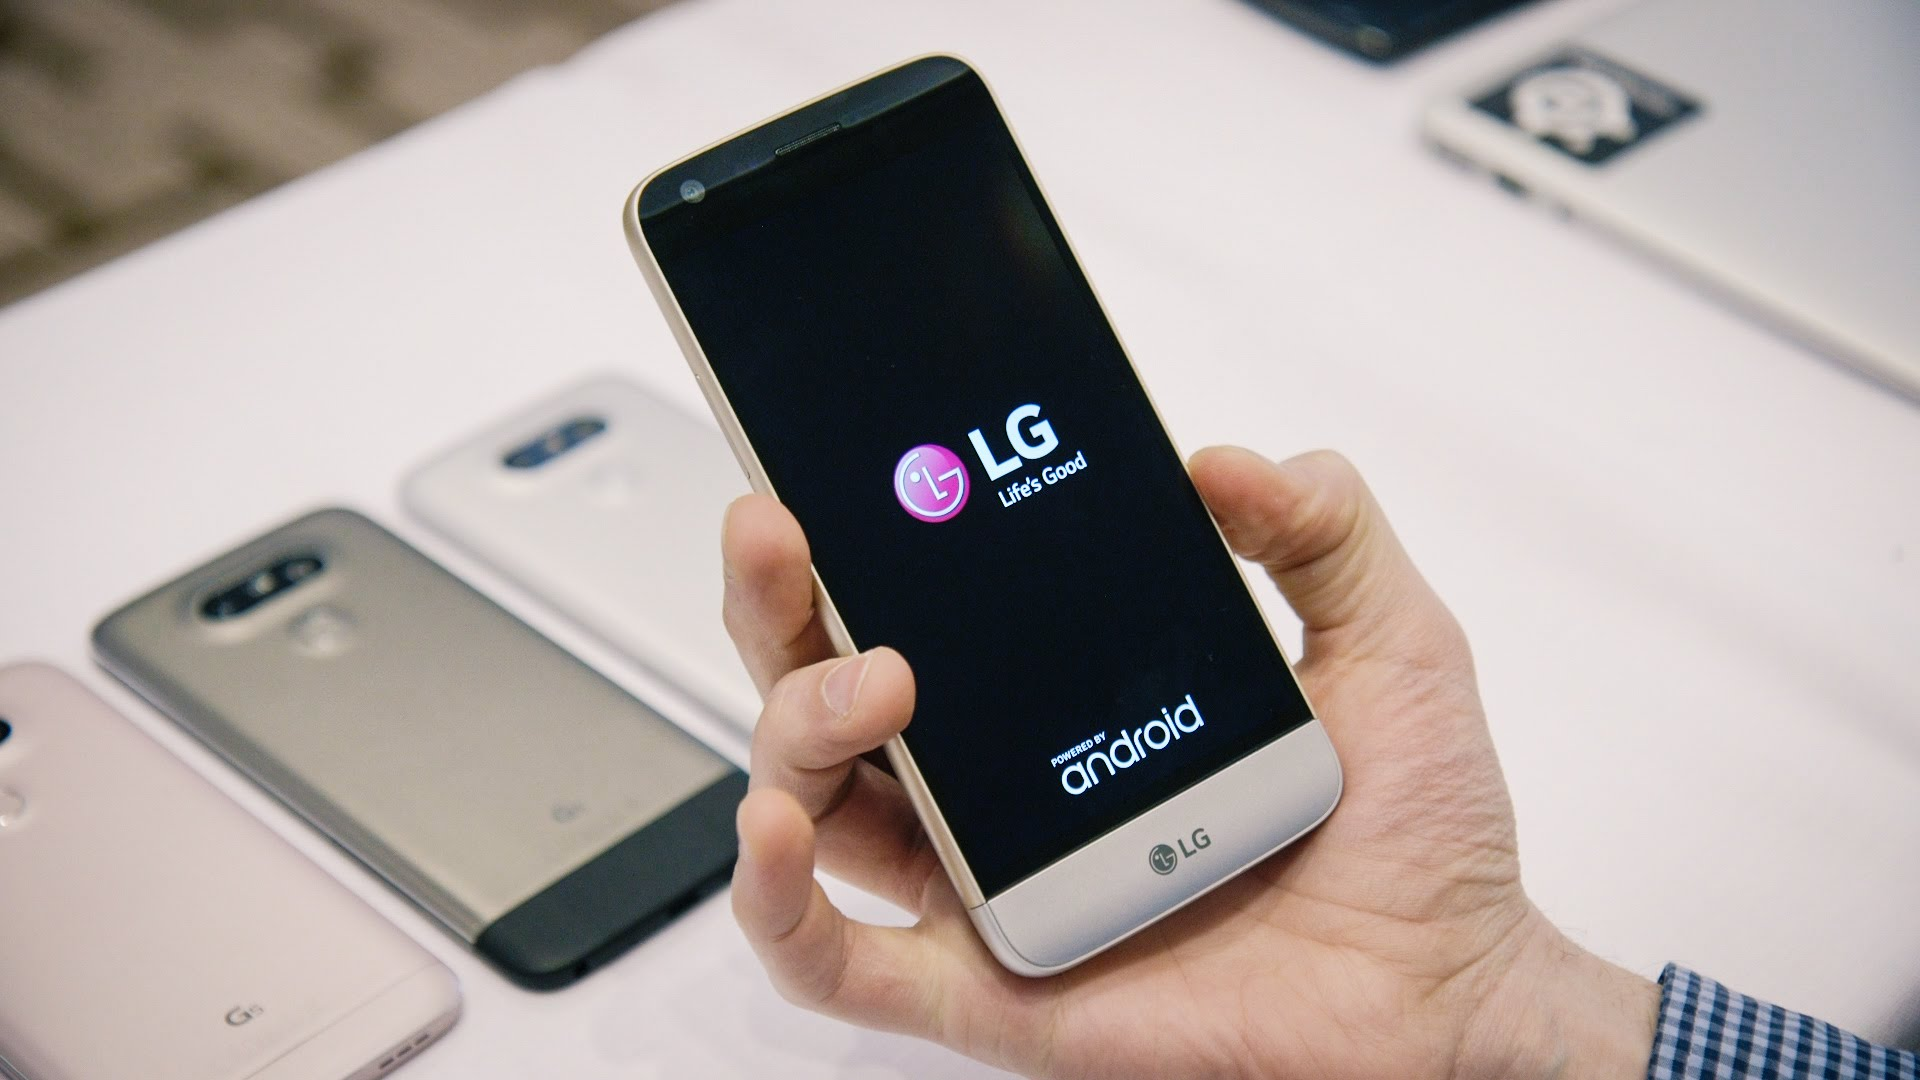 How to Install Lineage OS 15.1 on T-Mobile LG G5, Install Android 8.0.1 Oreo on T-Mobile LG G5, Install Lineage OS 15.1 on T-Mobile LG G5